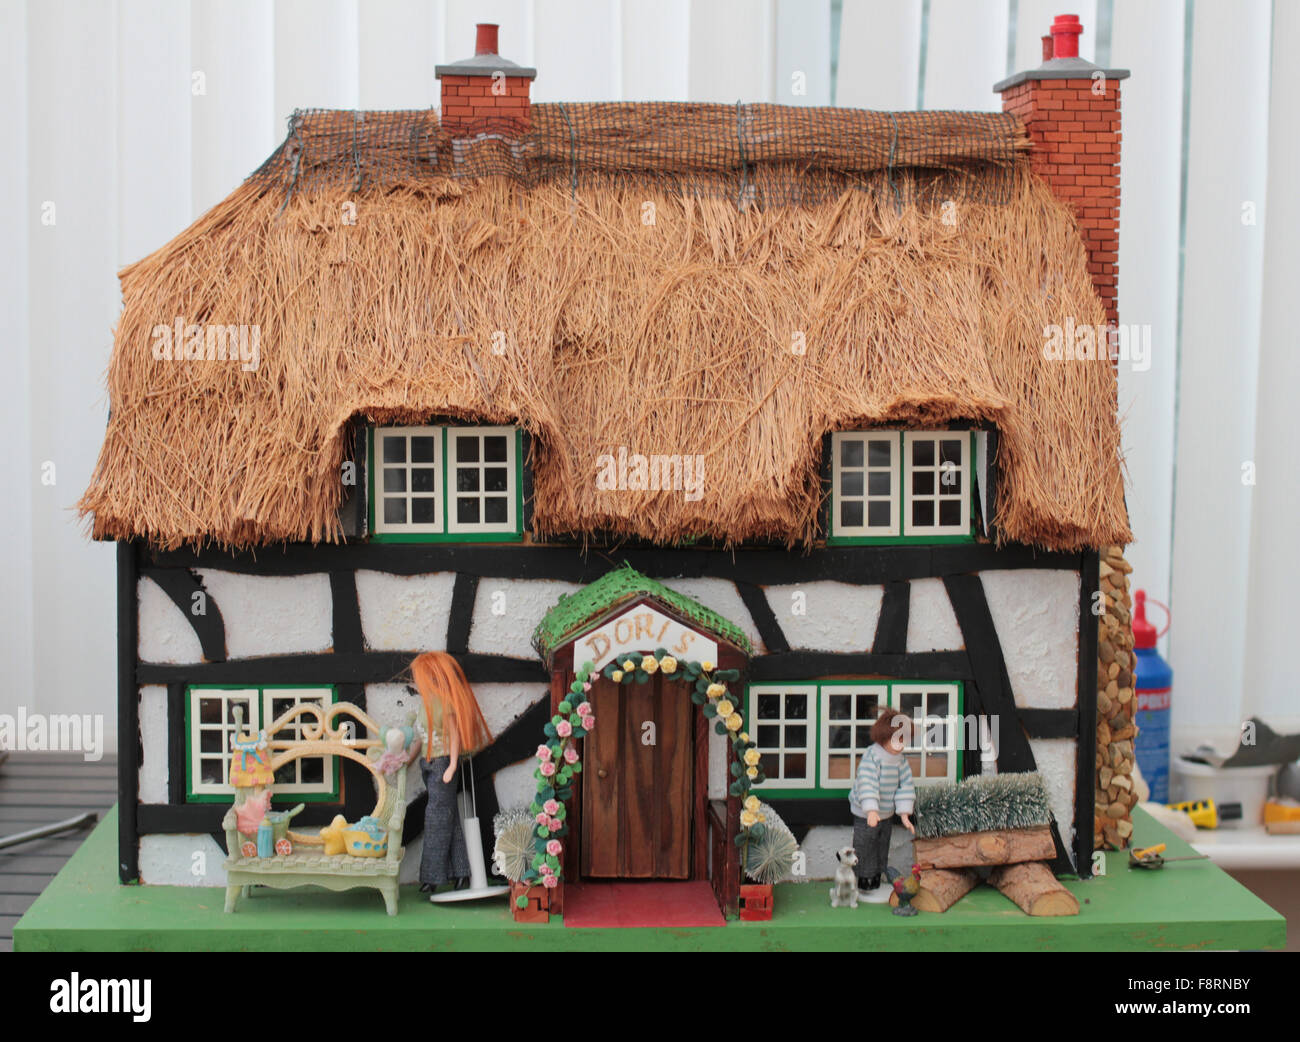 Dolls house with thatched roof - Stock Image